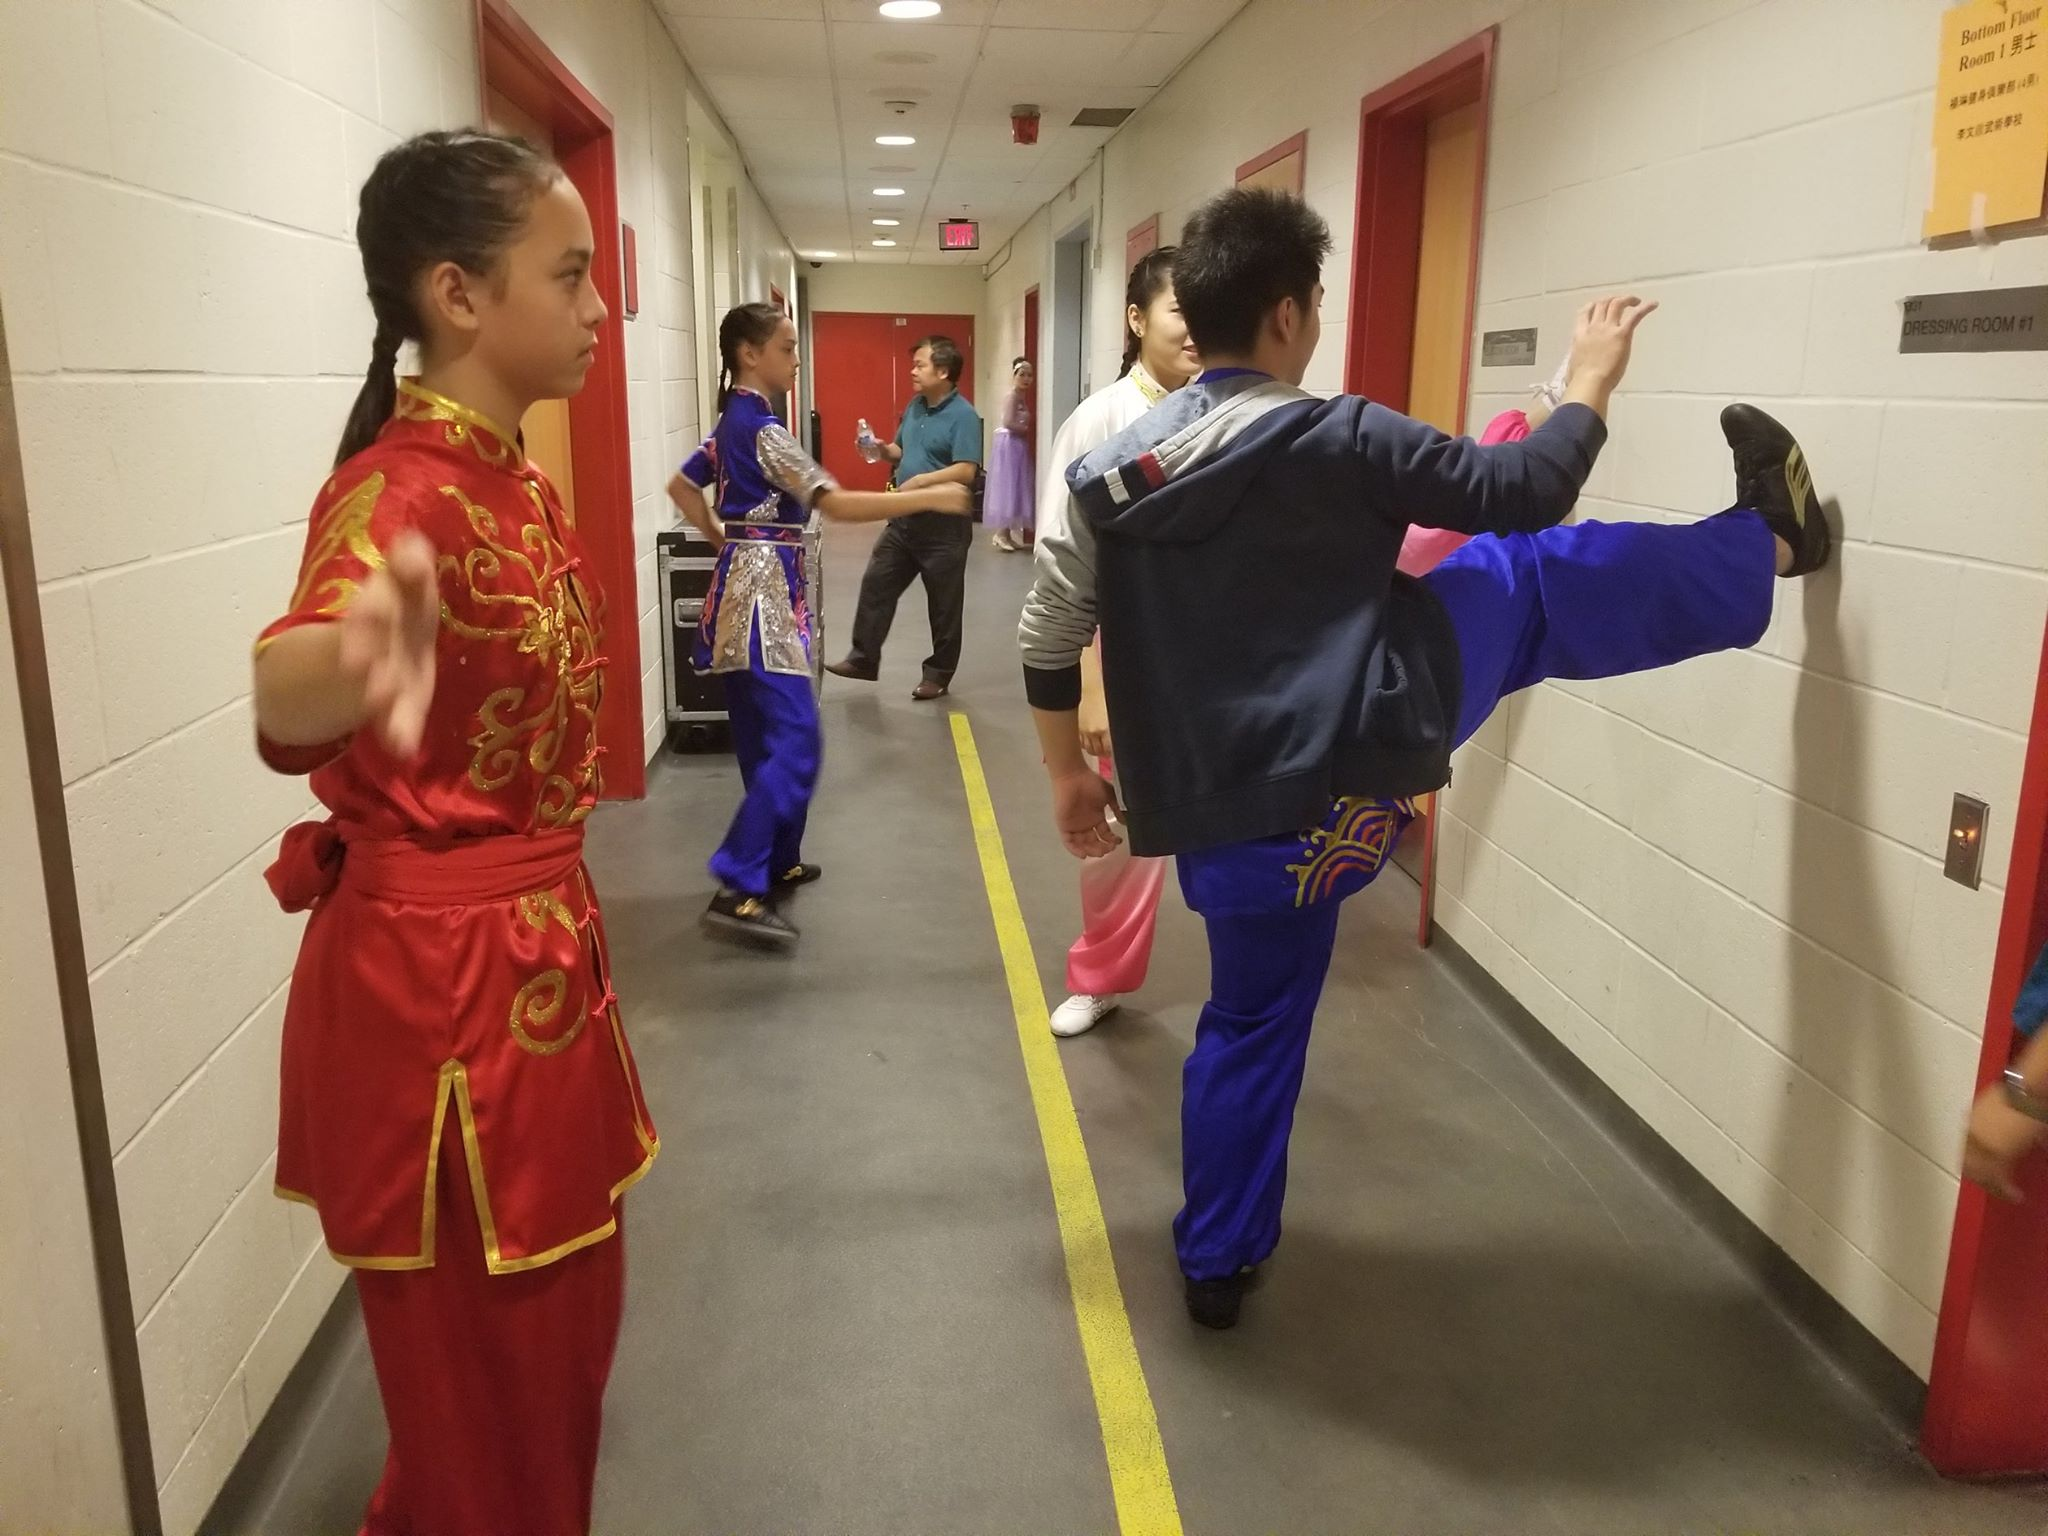 wayland-li-wushu-richmond-hill-canada-demonstration-2017-3.jpg